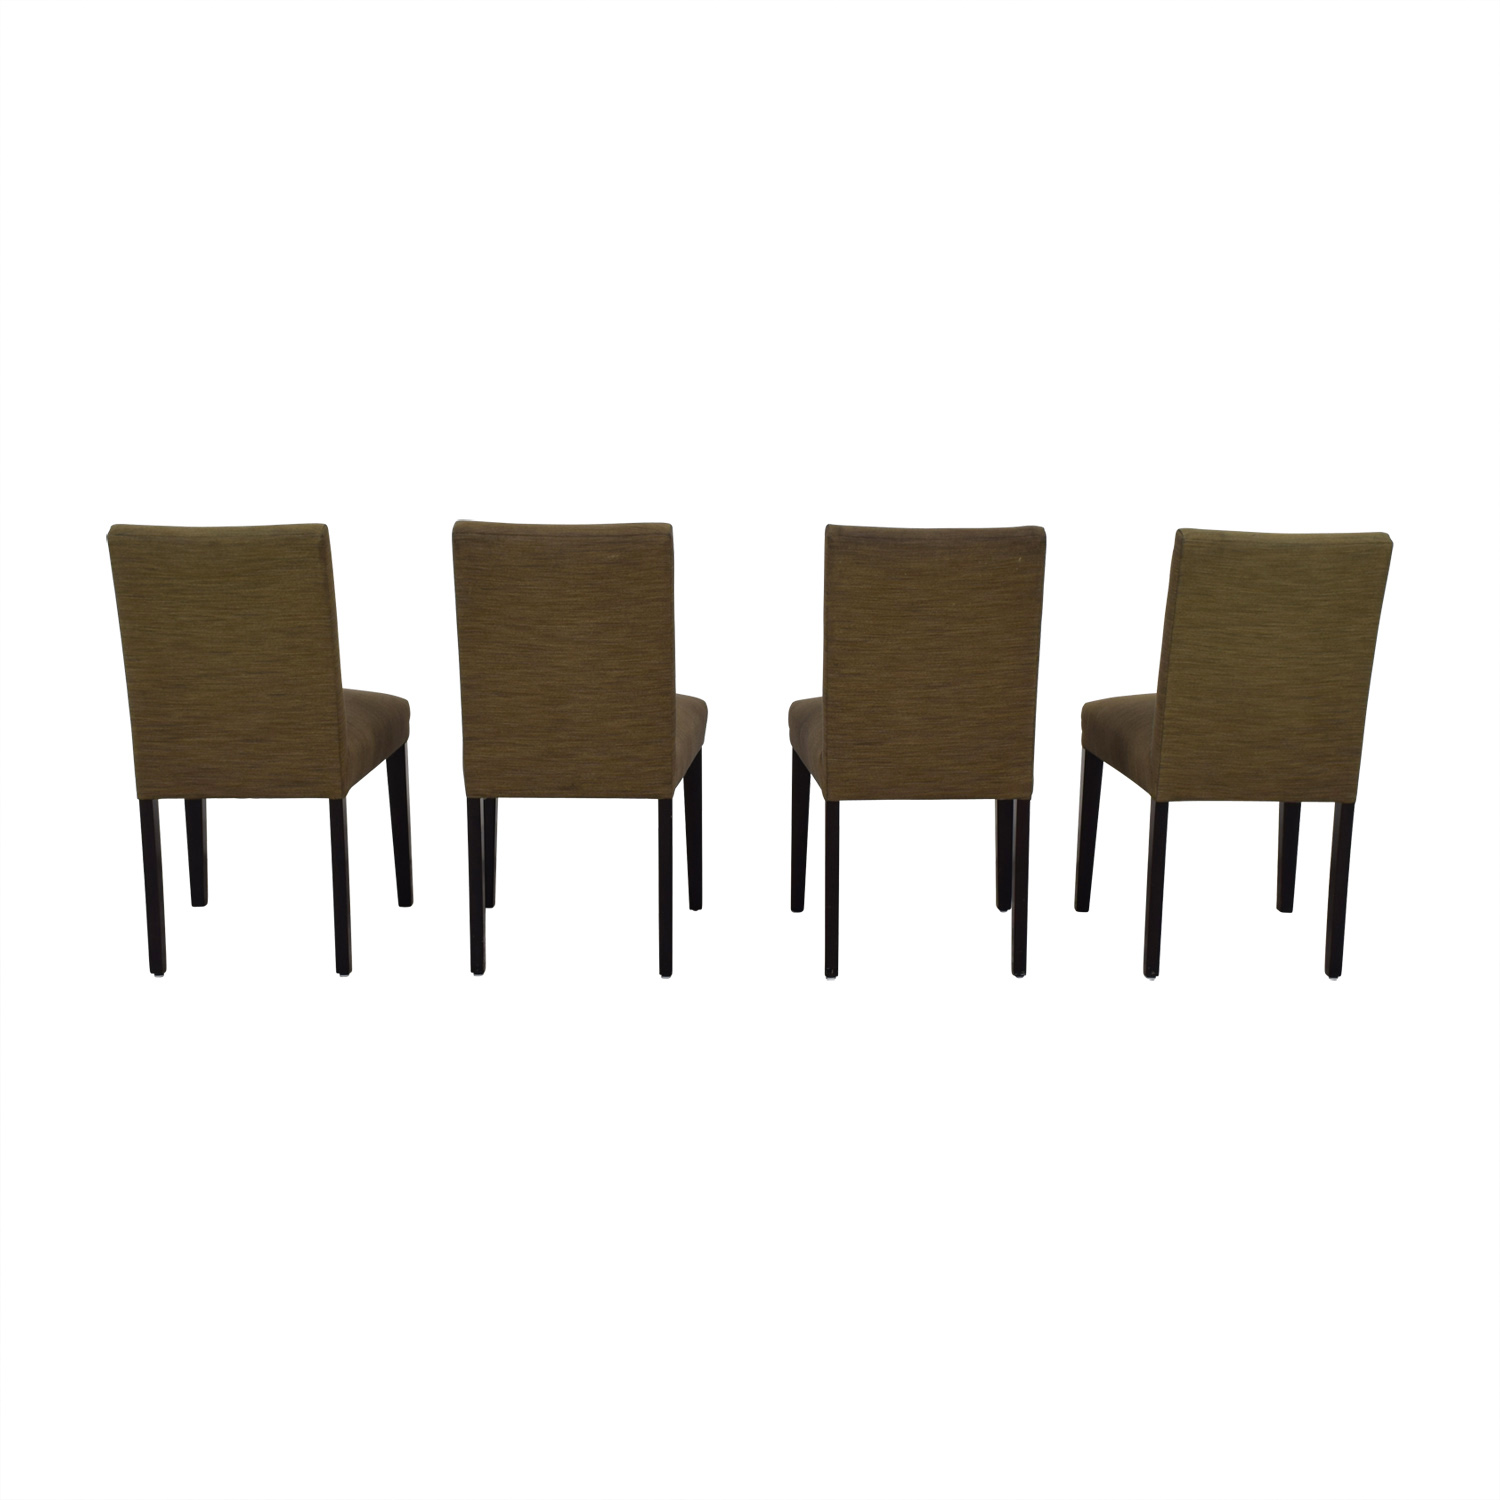 Room & Board Room & Board Brown Upholstered Dining Chairs nyc